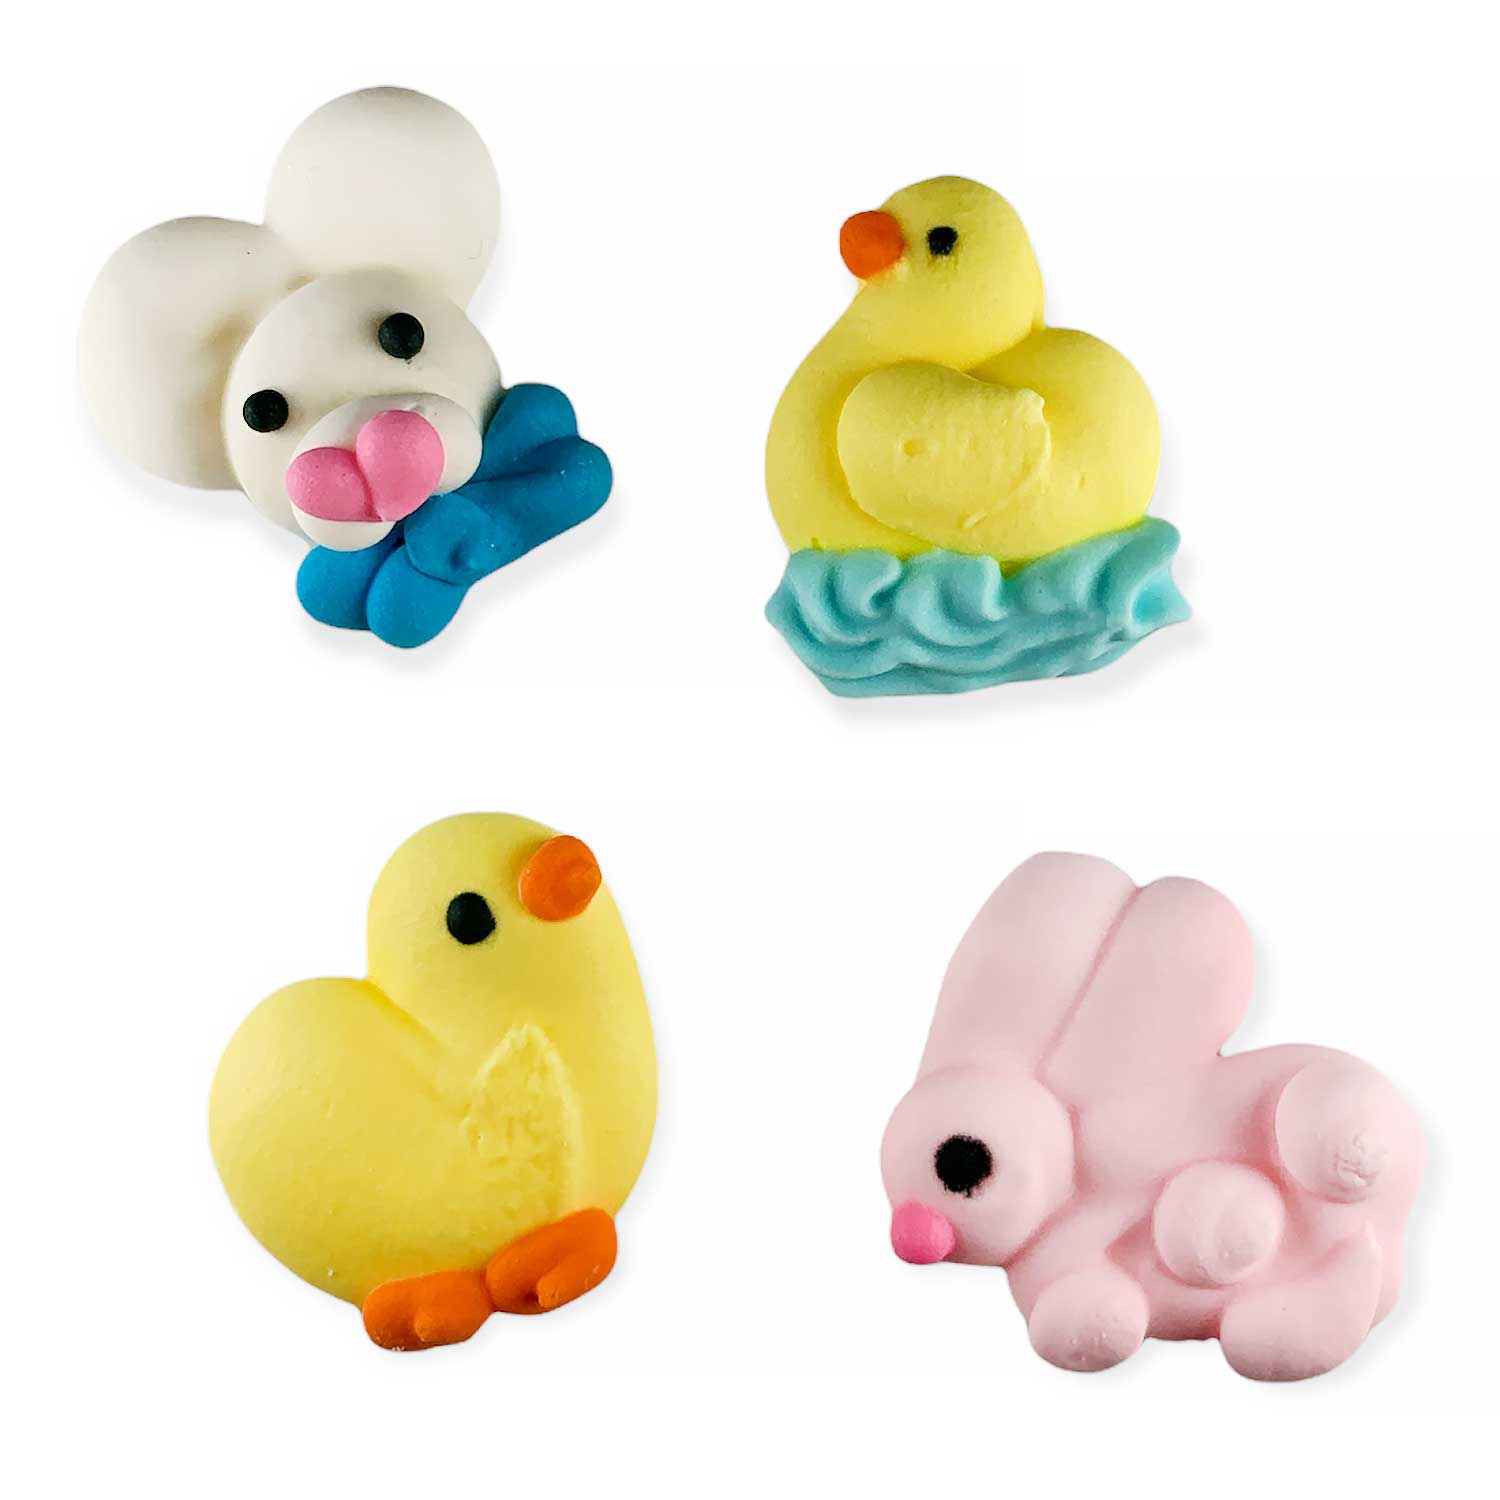 Icing Layons - Rabbit & Chick Assortment